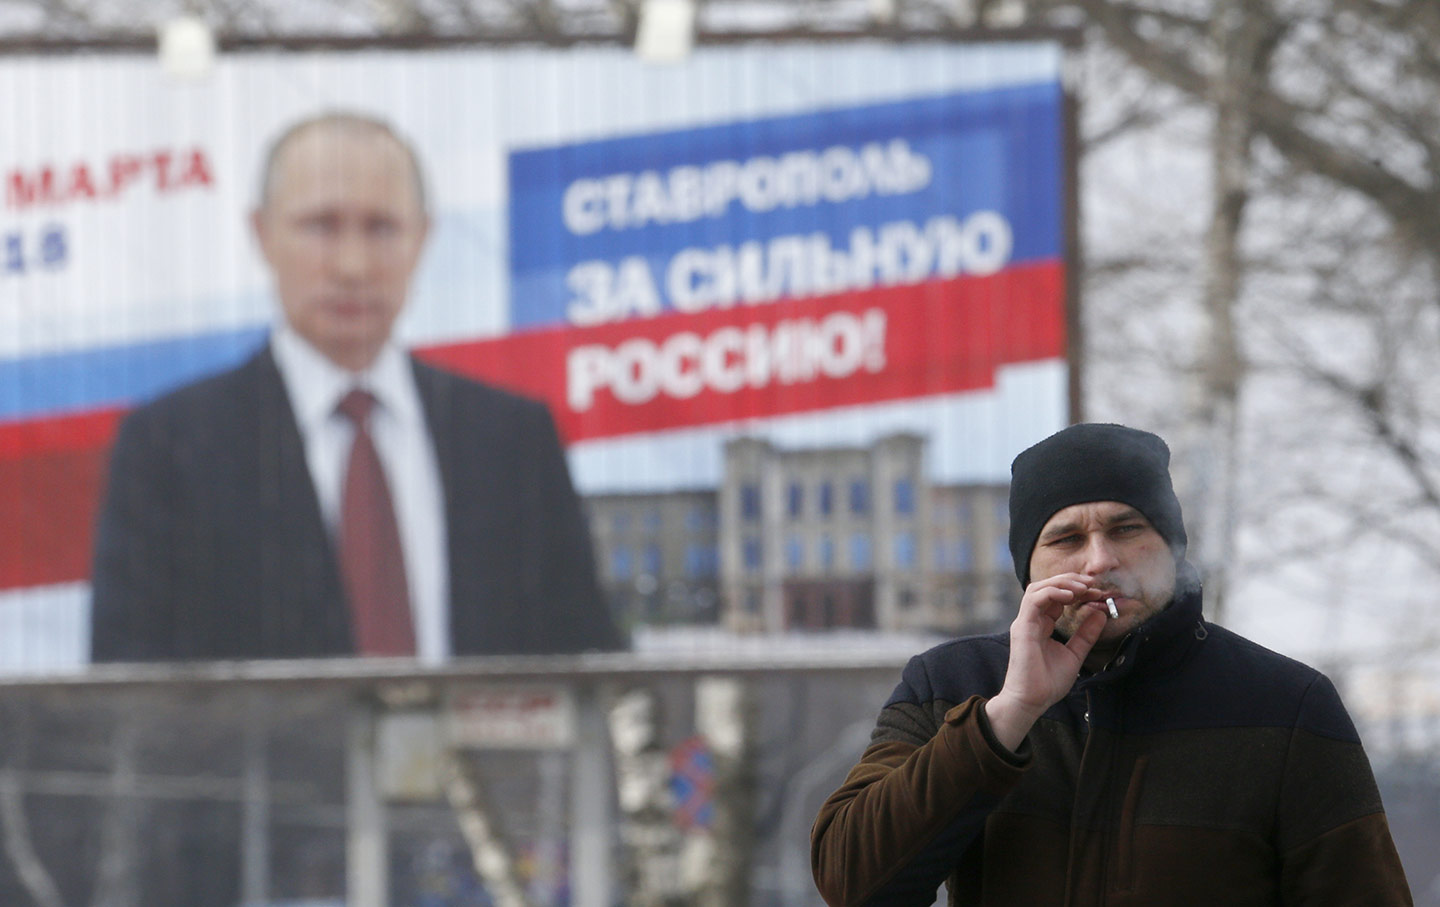 Man smokes in front of Putin billboard